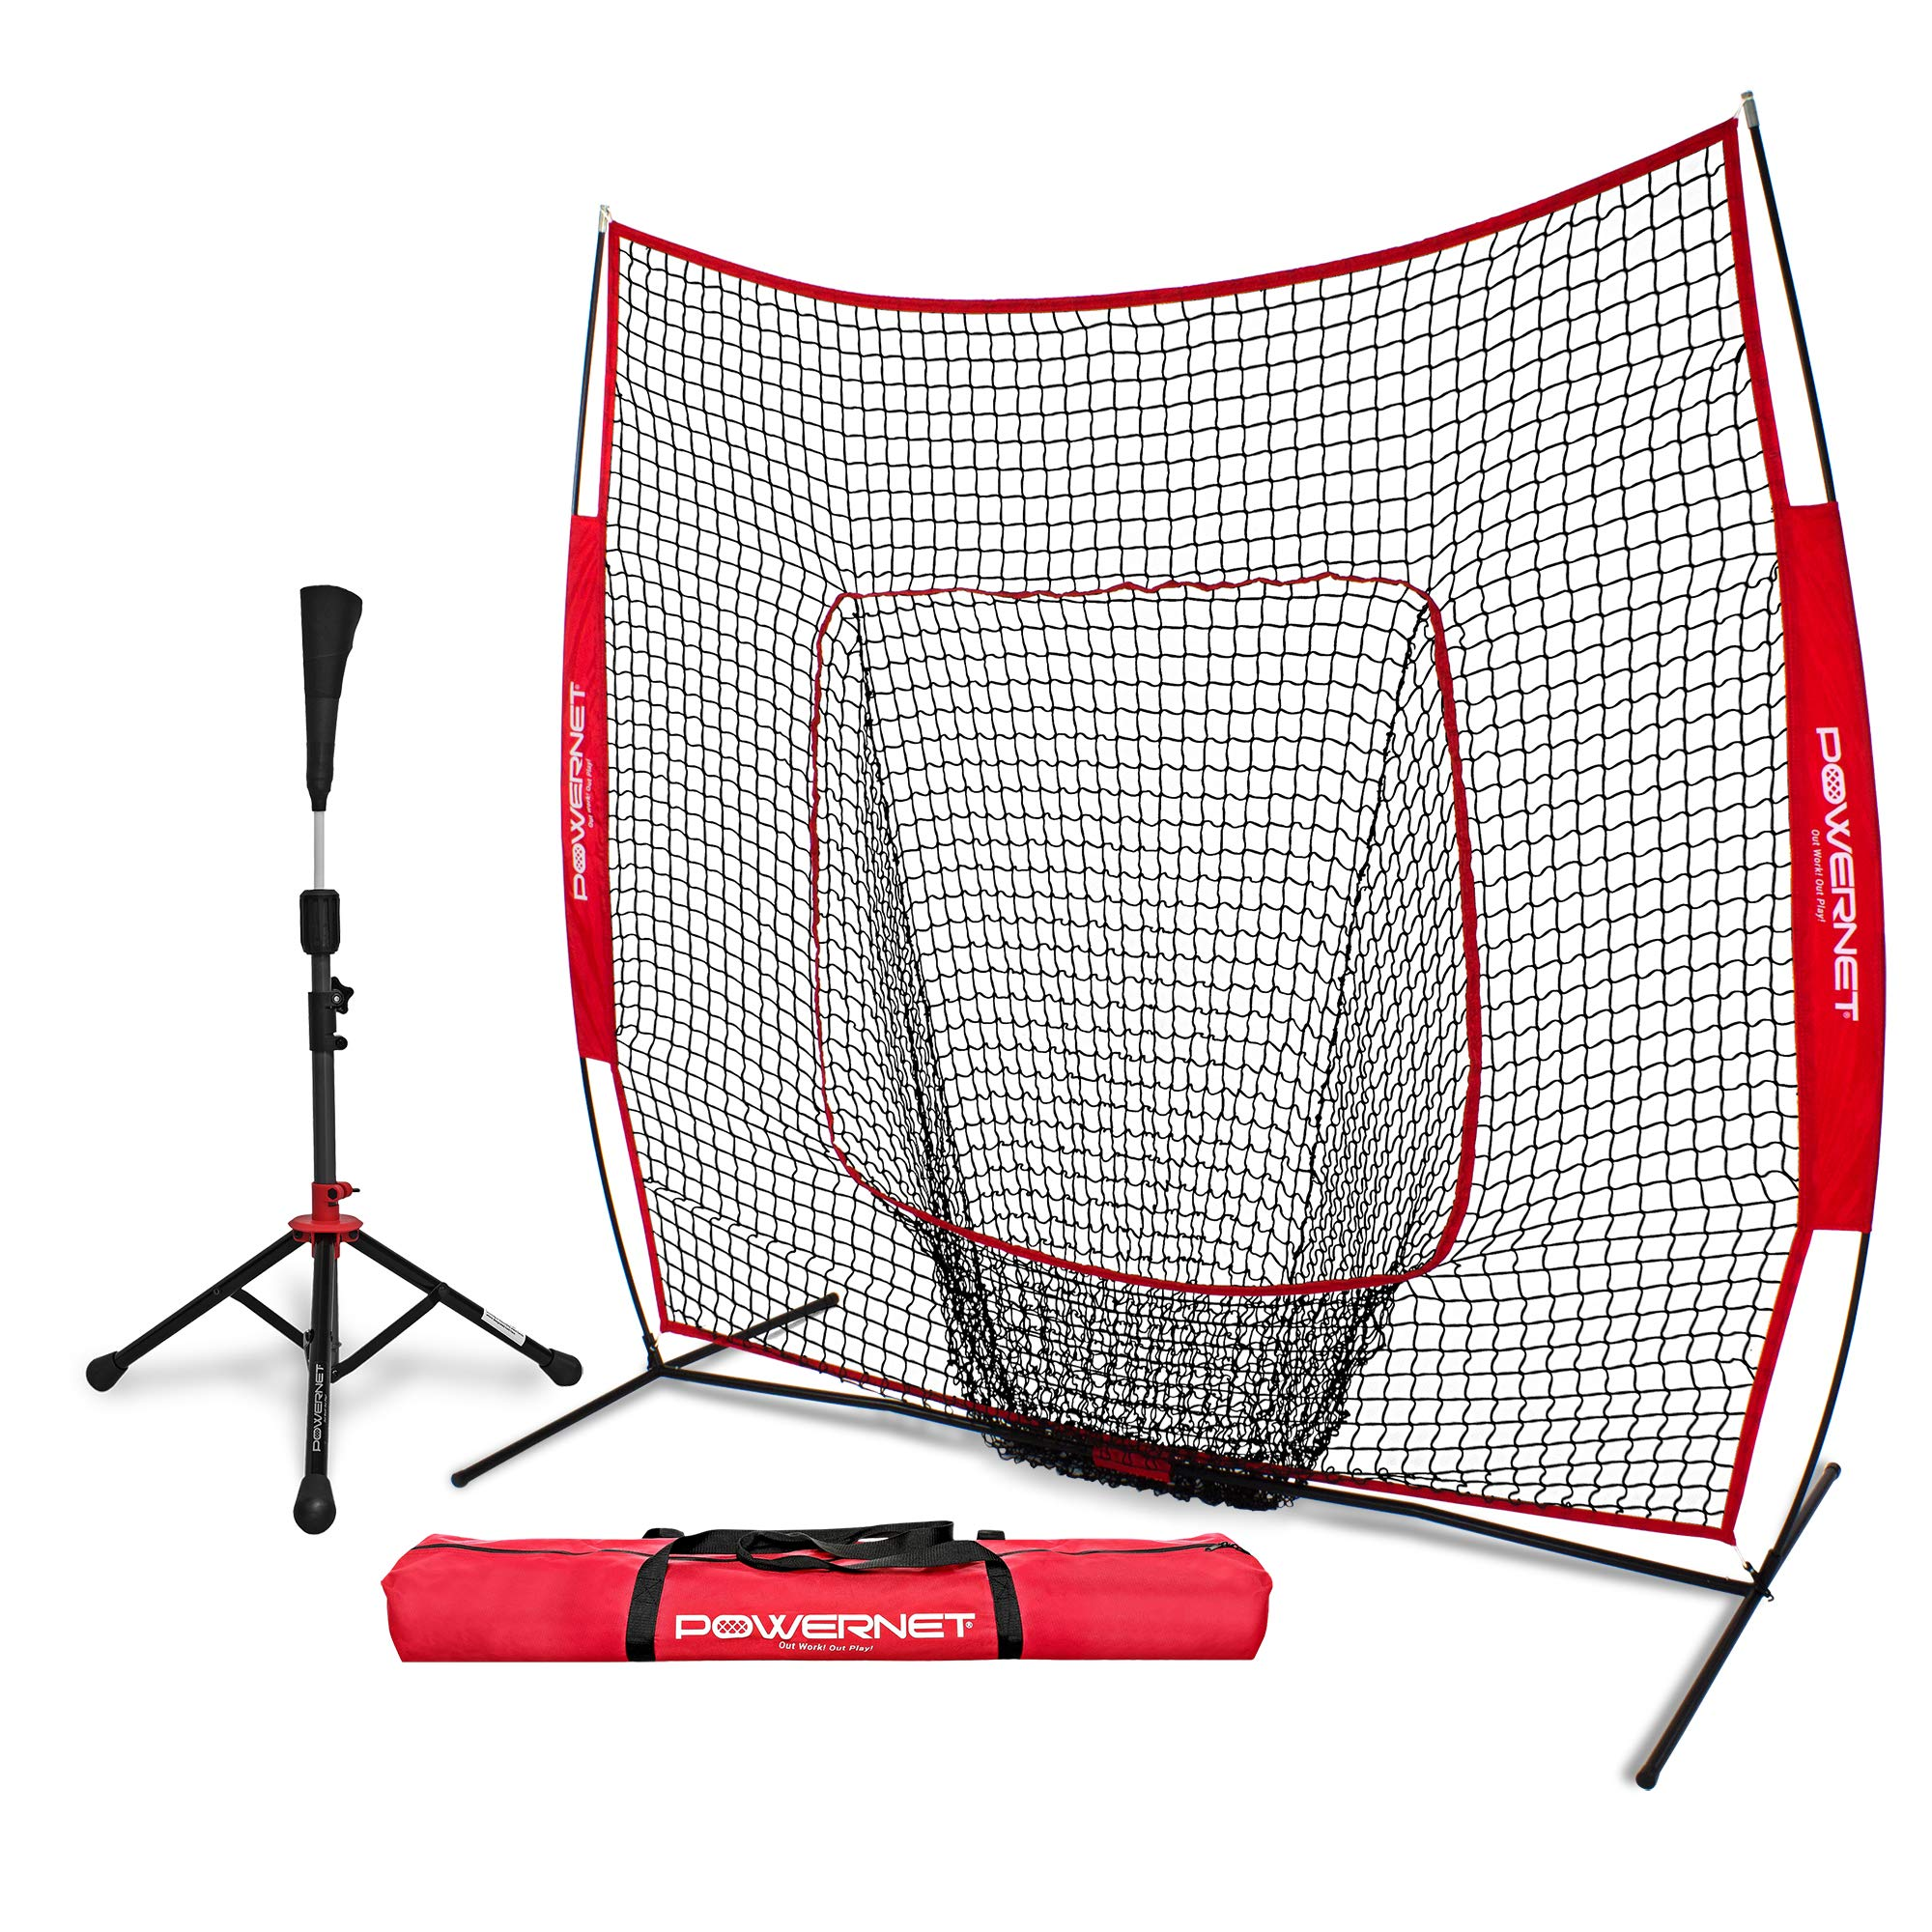 PowerNet Baseball Softball Practice Net 7x7 with Deluxe Tee (Red) | Practice Hitting, Pitching, Batting, Fielding | Portable, Backstop, Training Aid, Large Mouth, Bow Frame | Training Equipment Bundle by PowerNet